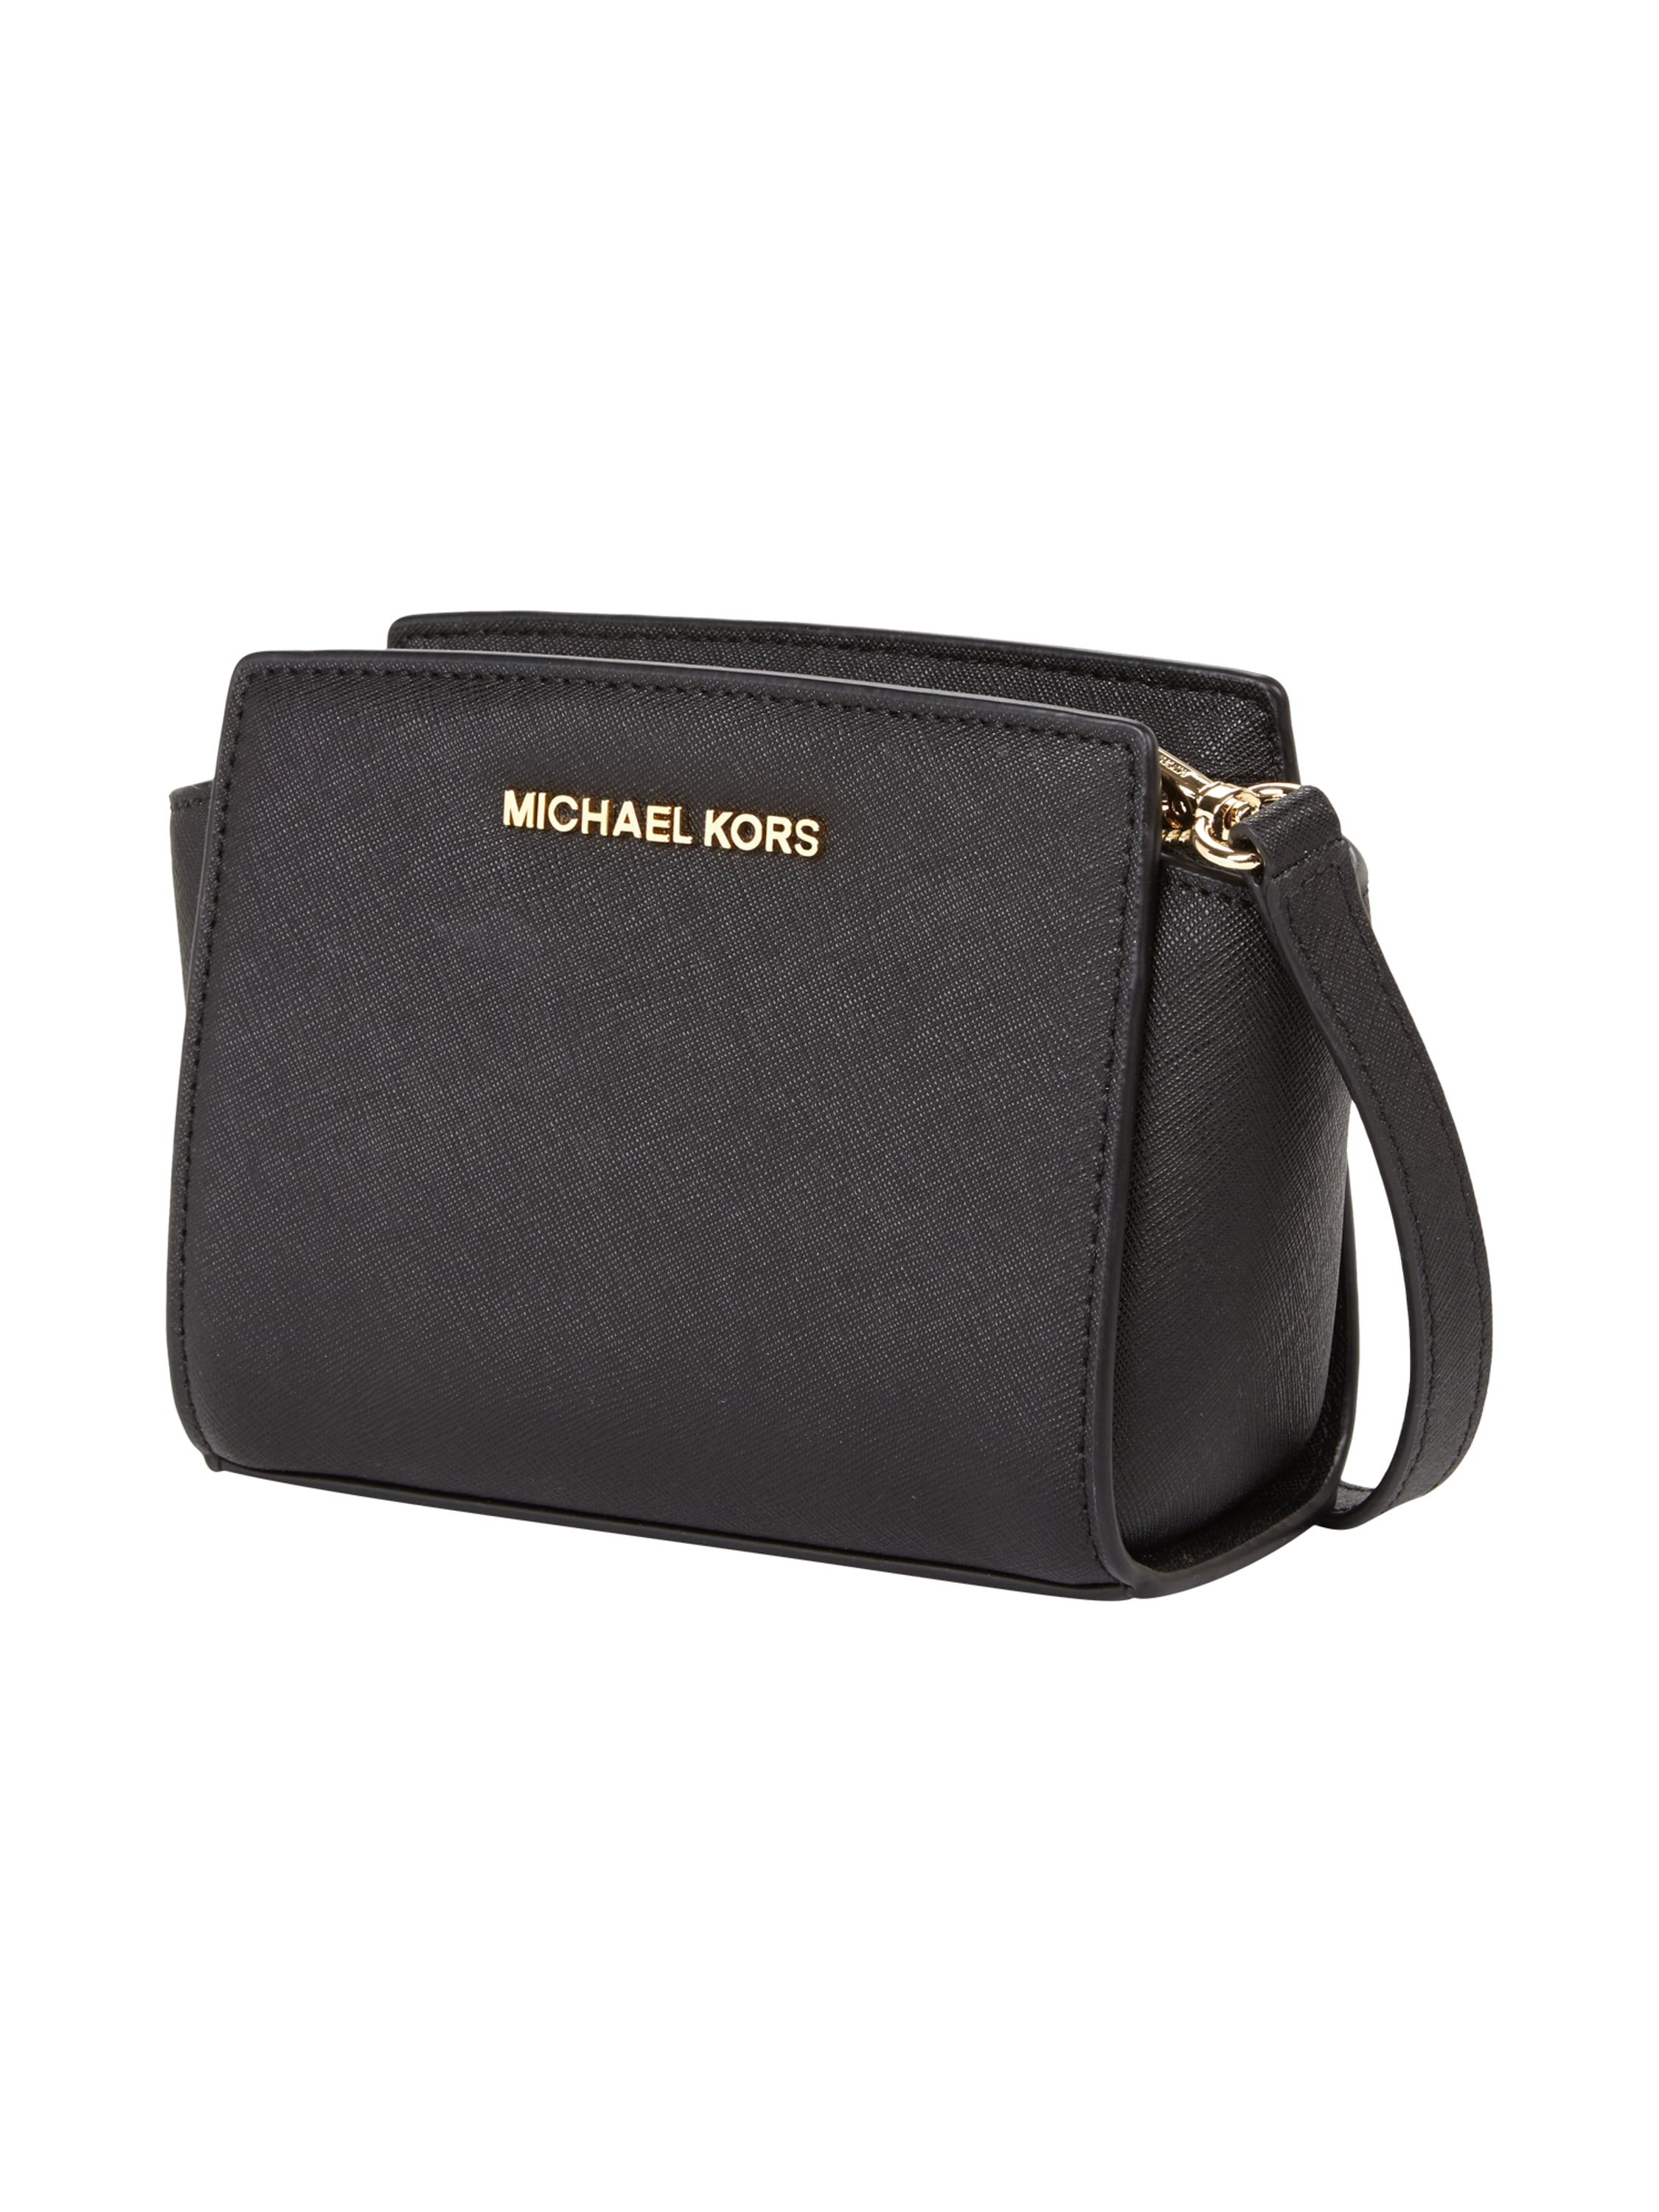 michael kors umh ngetasche schwarz michael michael kors selma handtasche schwarz michael kors. Black Bedroom Furniture Sets. Home Design Ideas